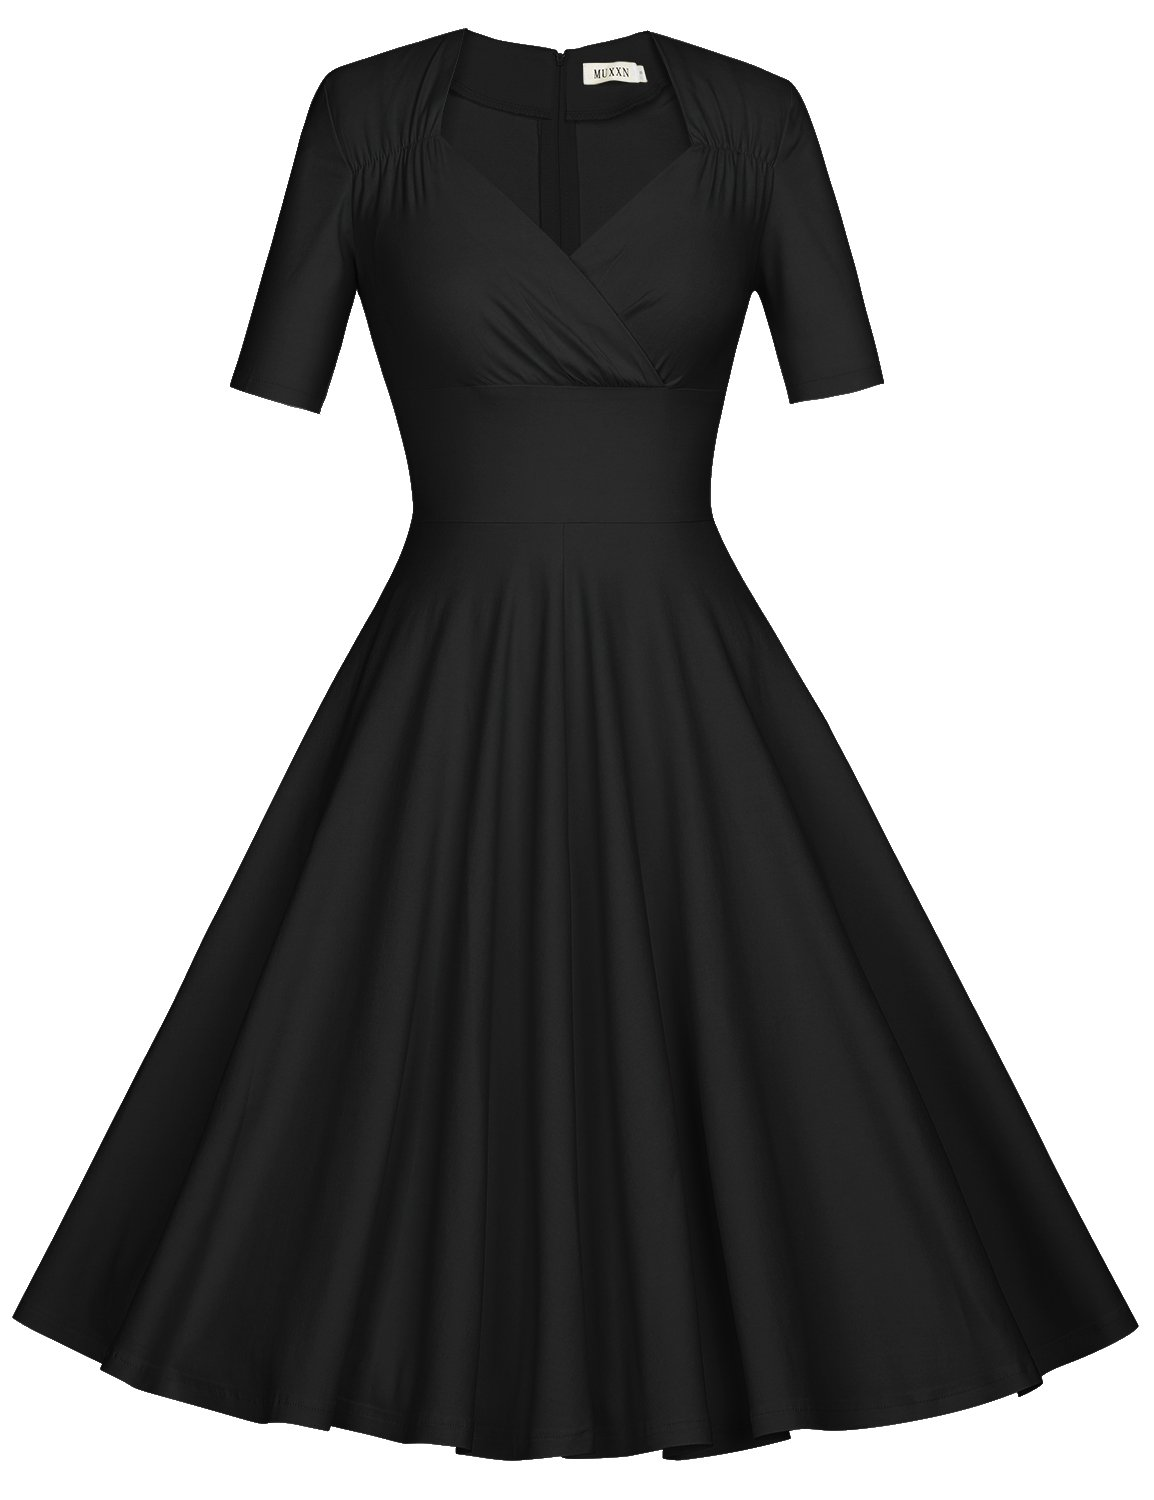 MUXXN Women's 50s Retro Solid Patchwork Pleated Swing Dress (L, Black)